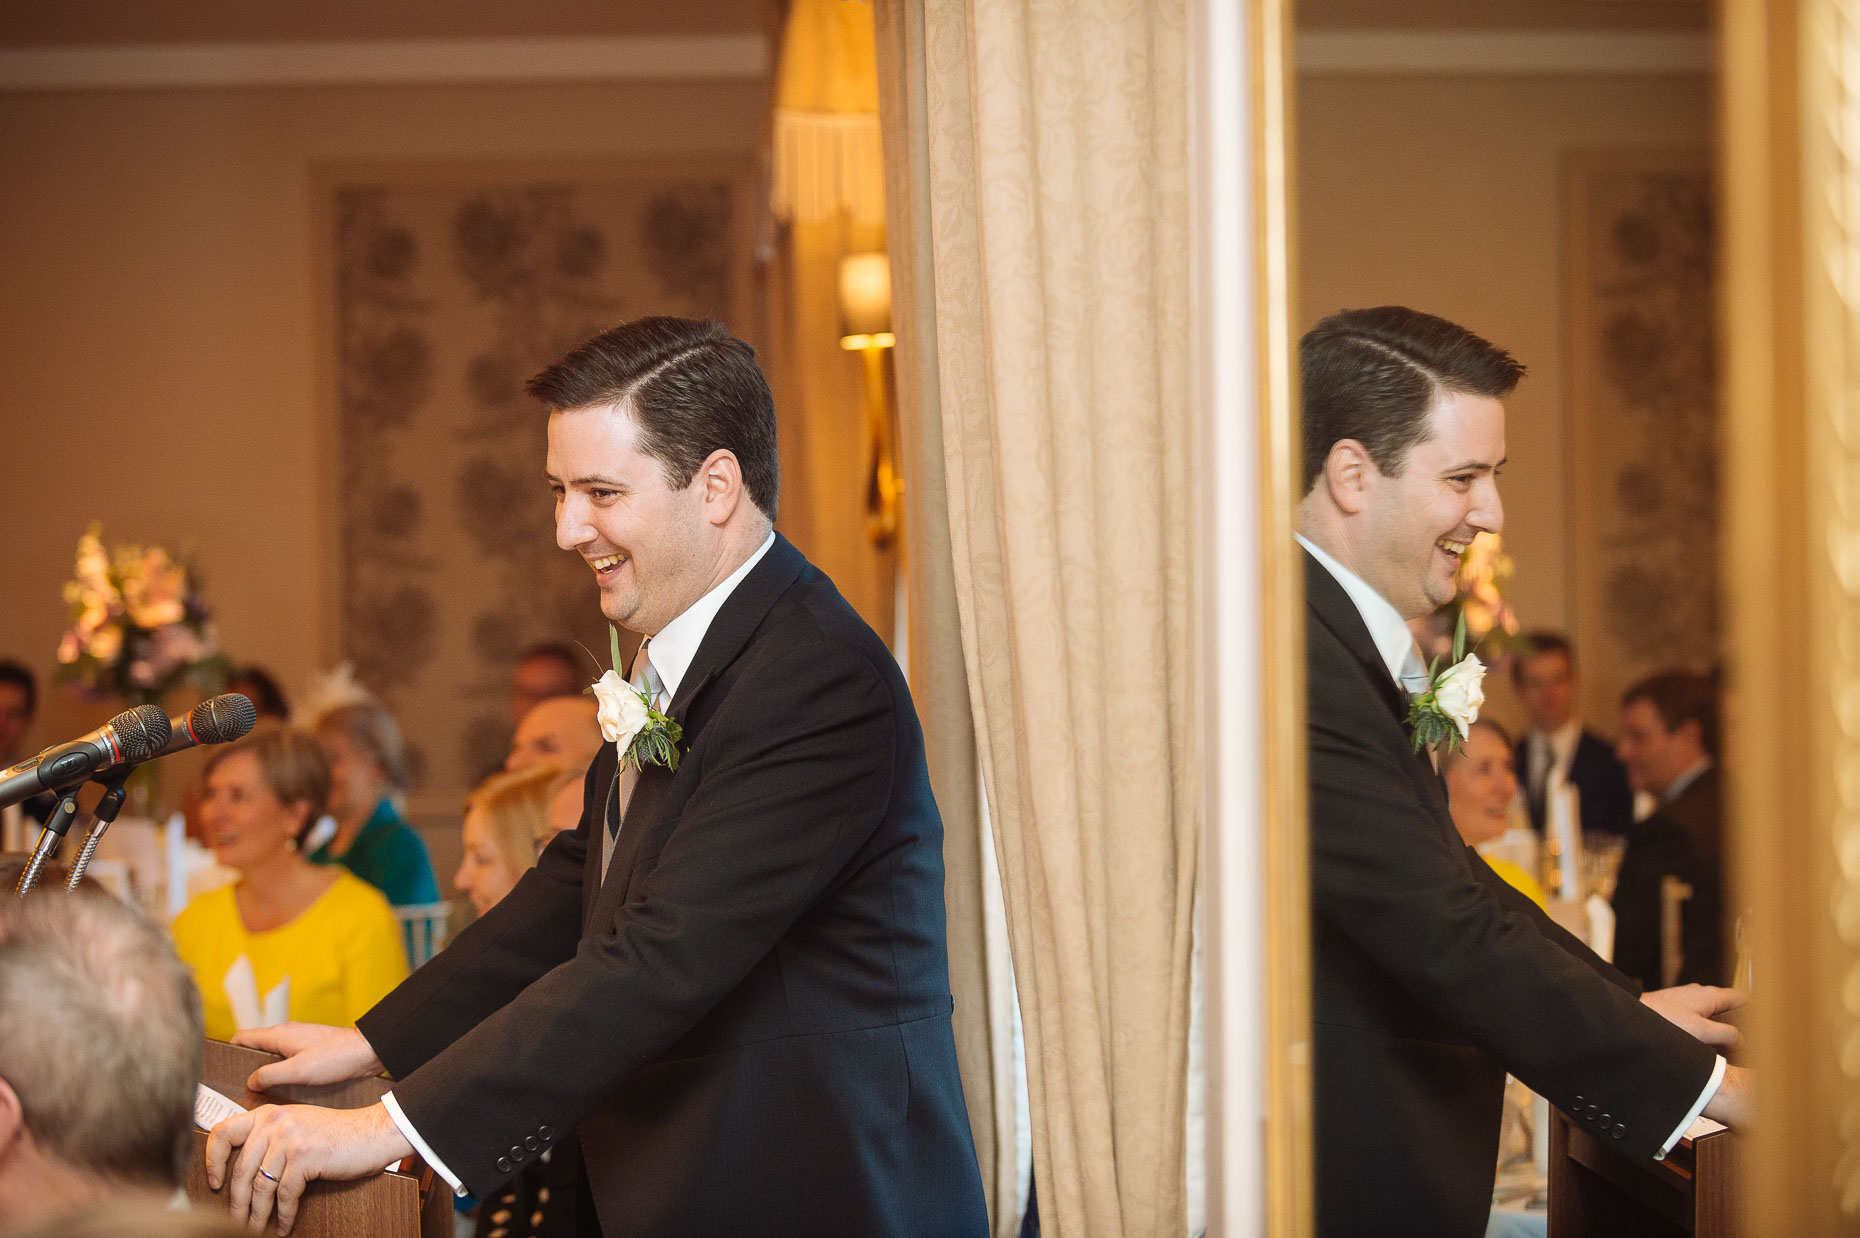 groom-speech-reflection-caledonian-club-wedding-reception-london-venue-16